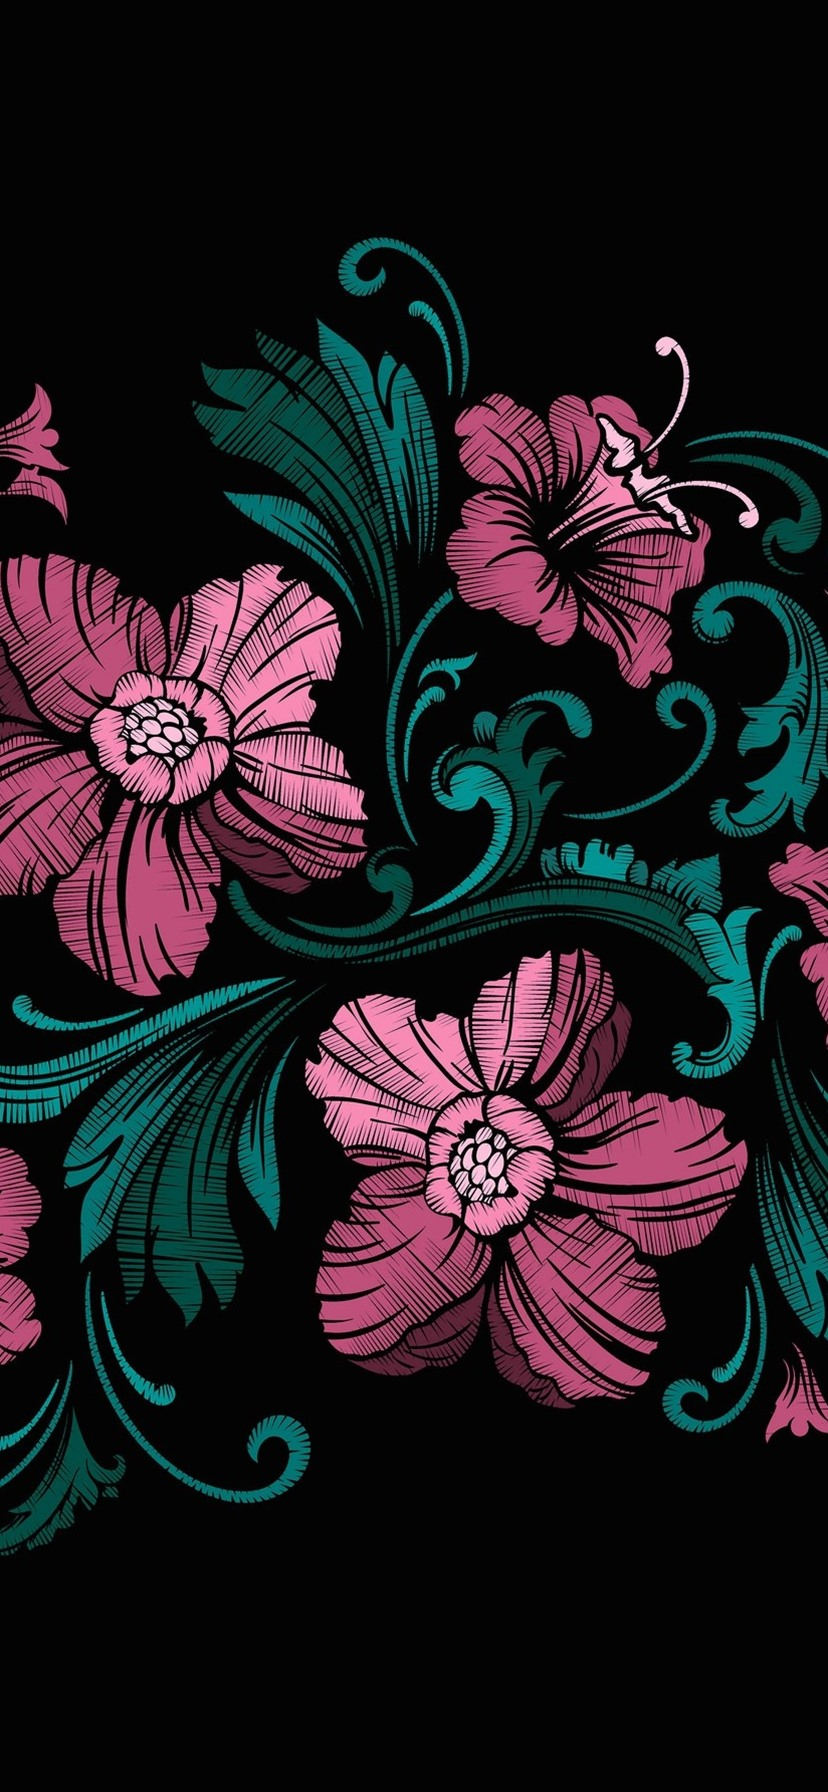 Pink Flowers Black Background Art Picture 828x1792 Iphone